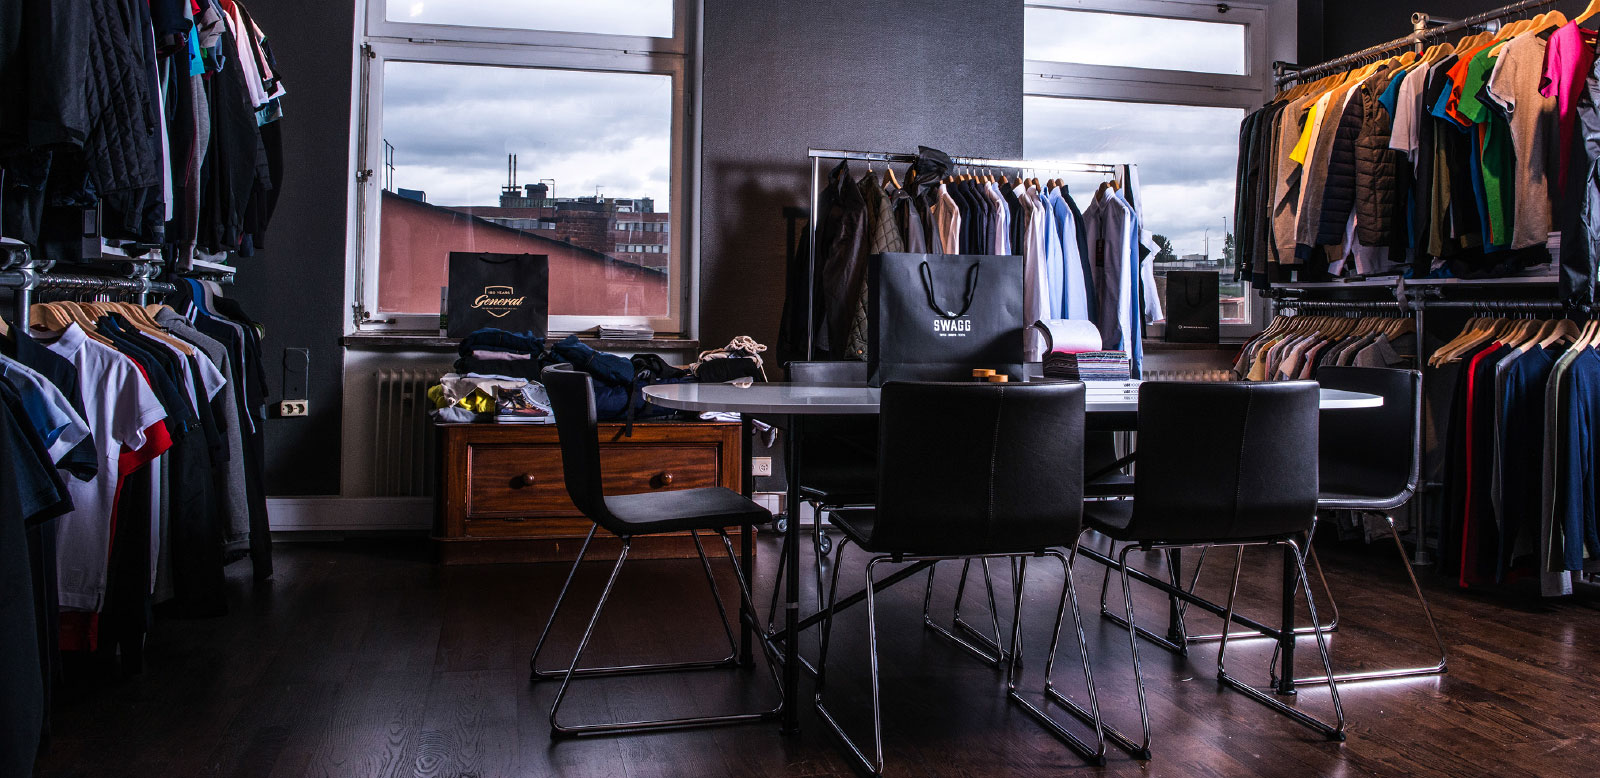 Swagg tryckeri showroom Stockholm